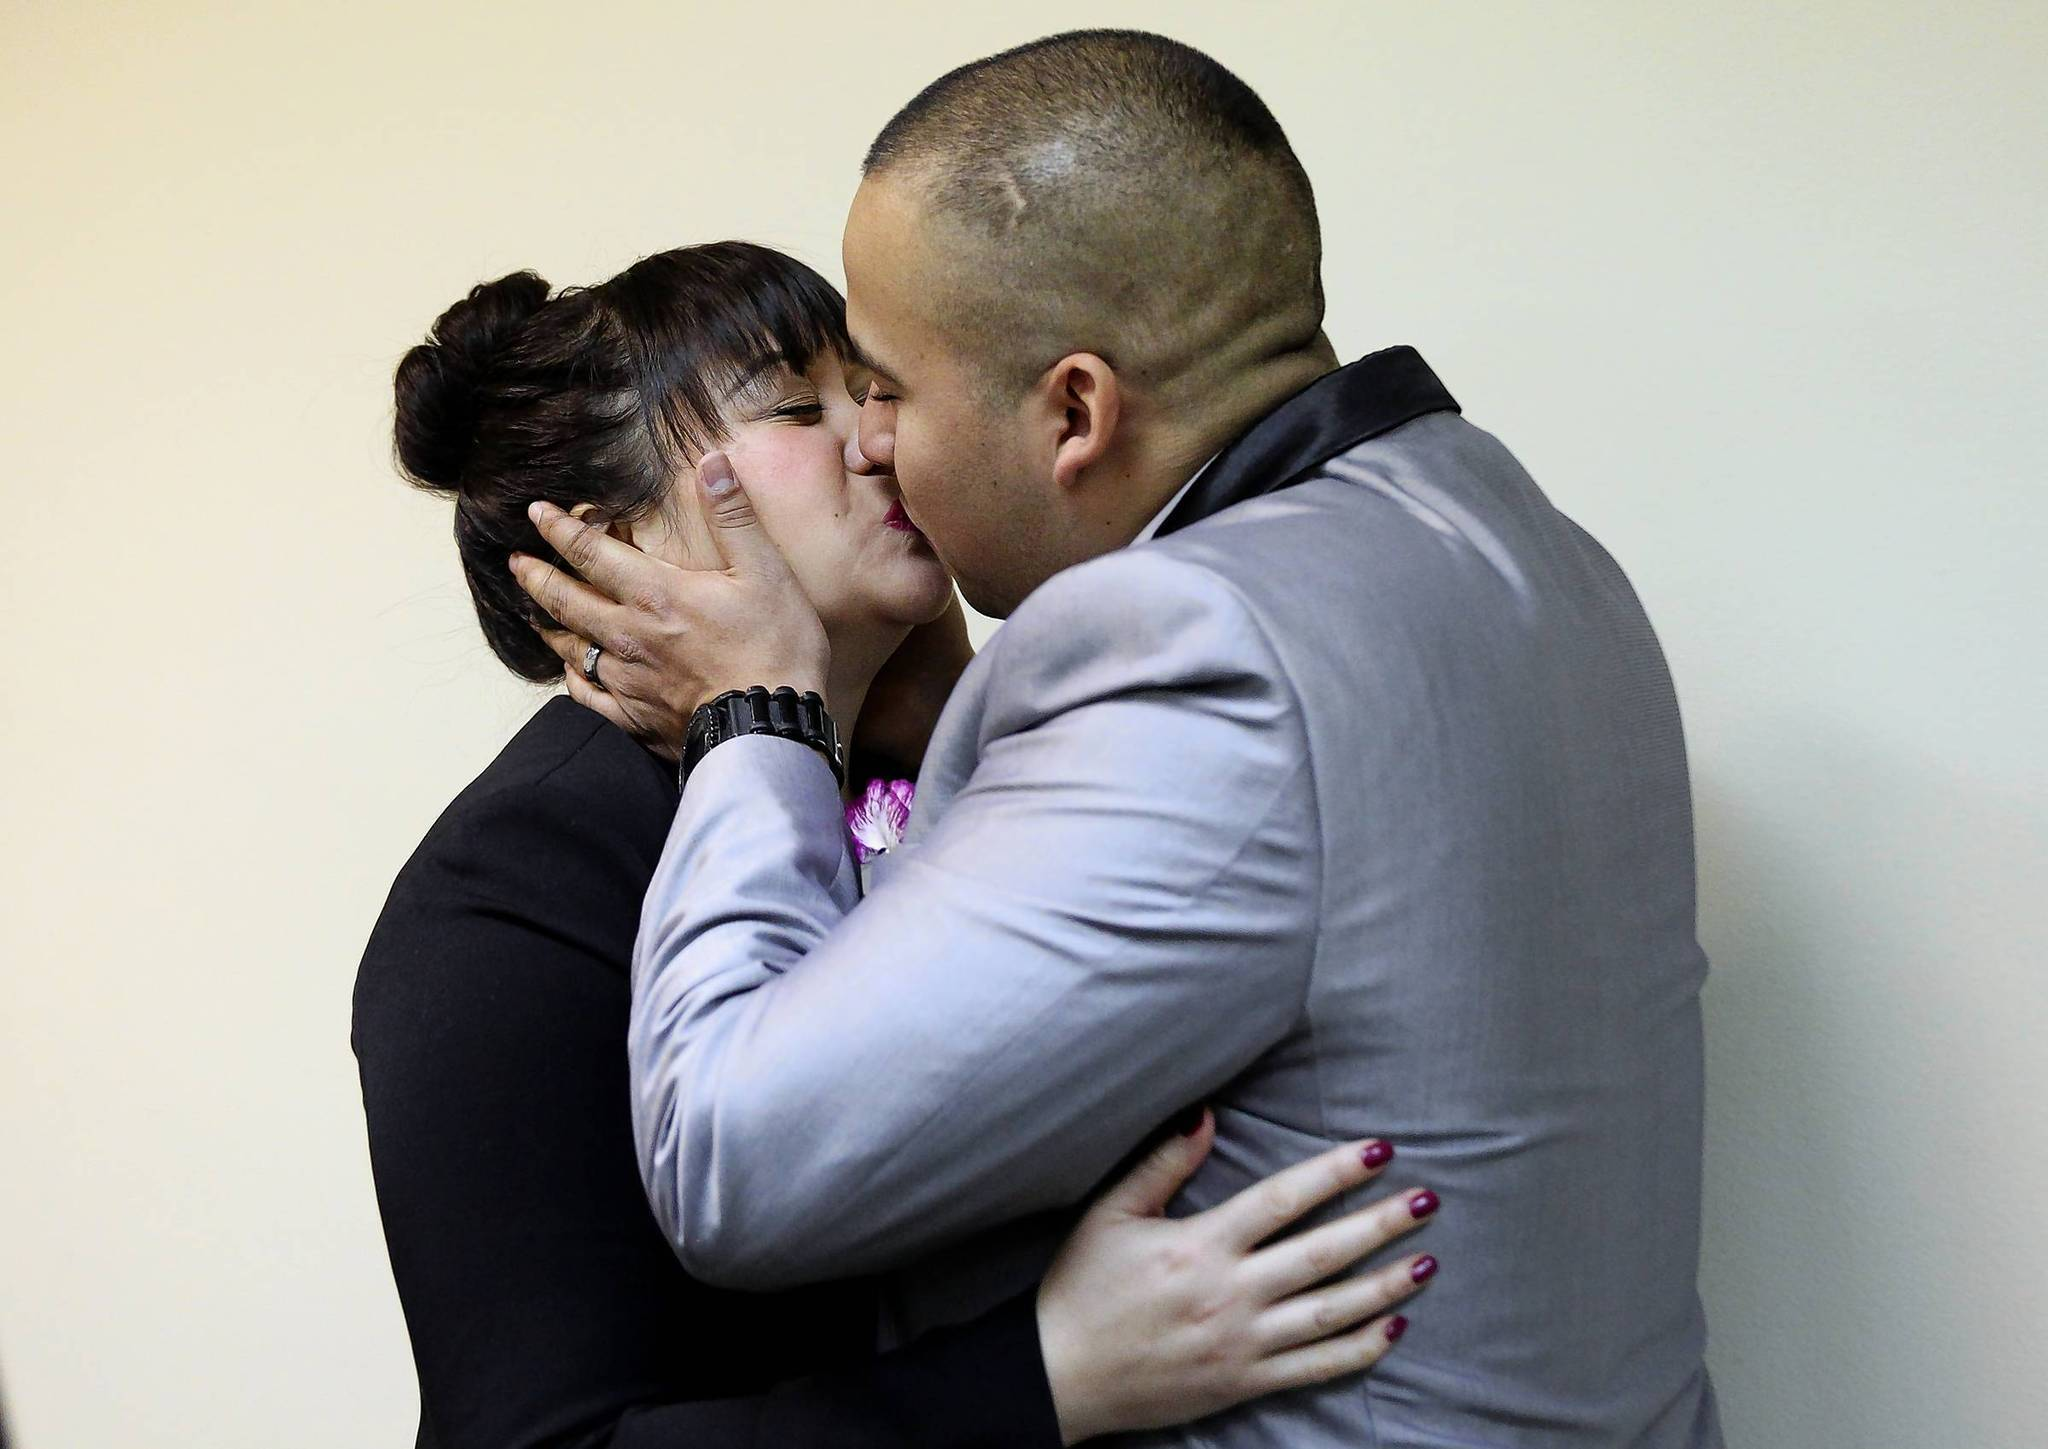 A man and a woman kiss